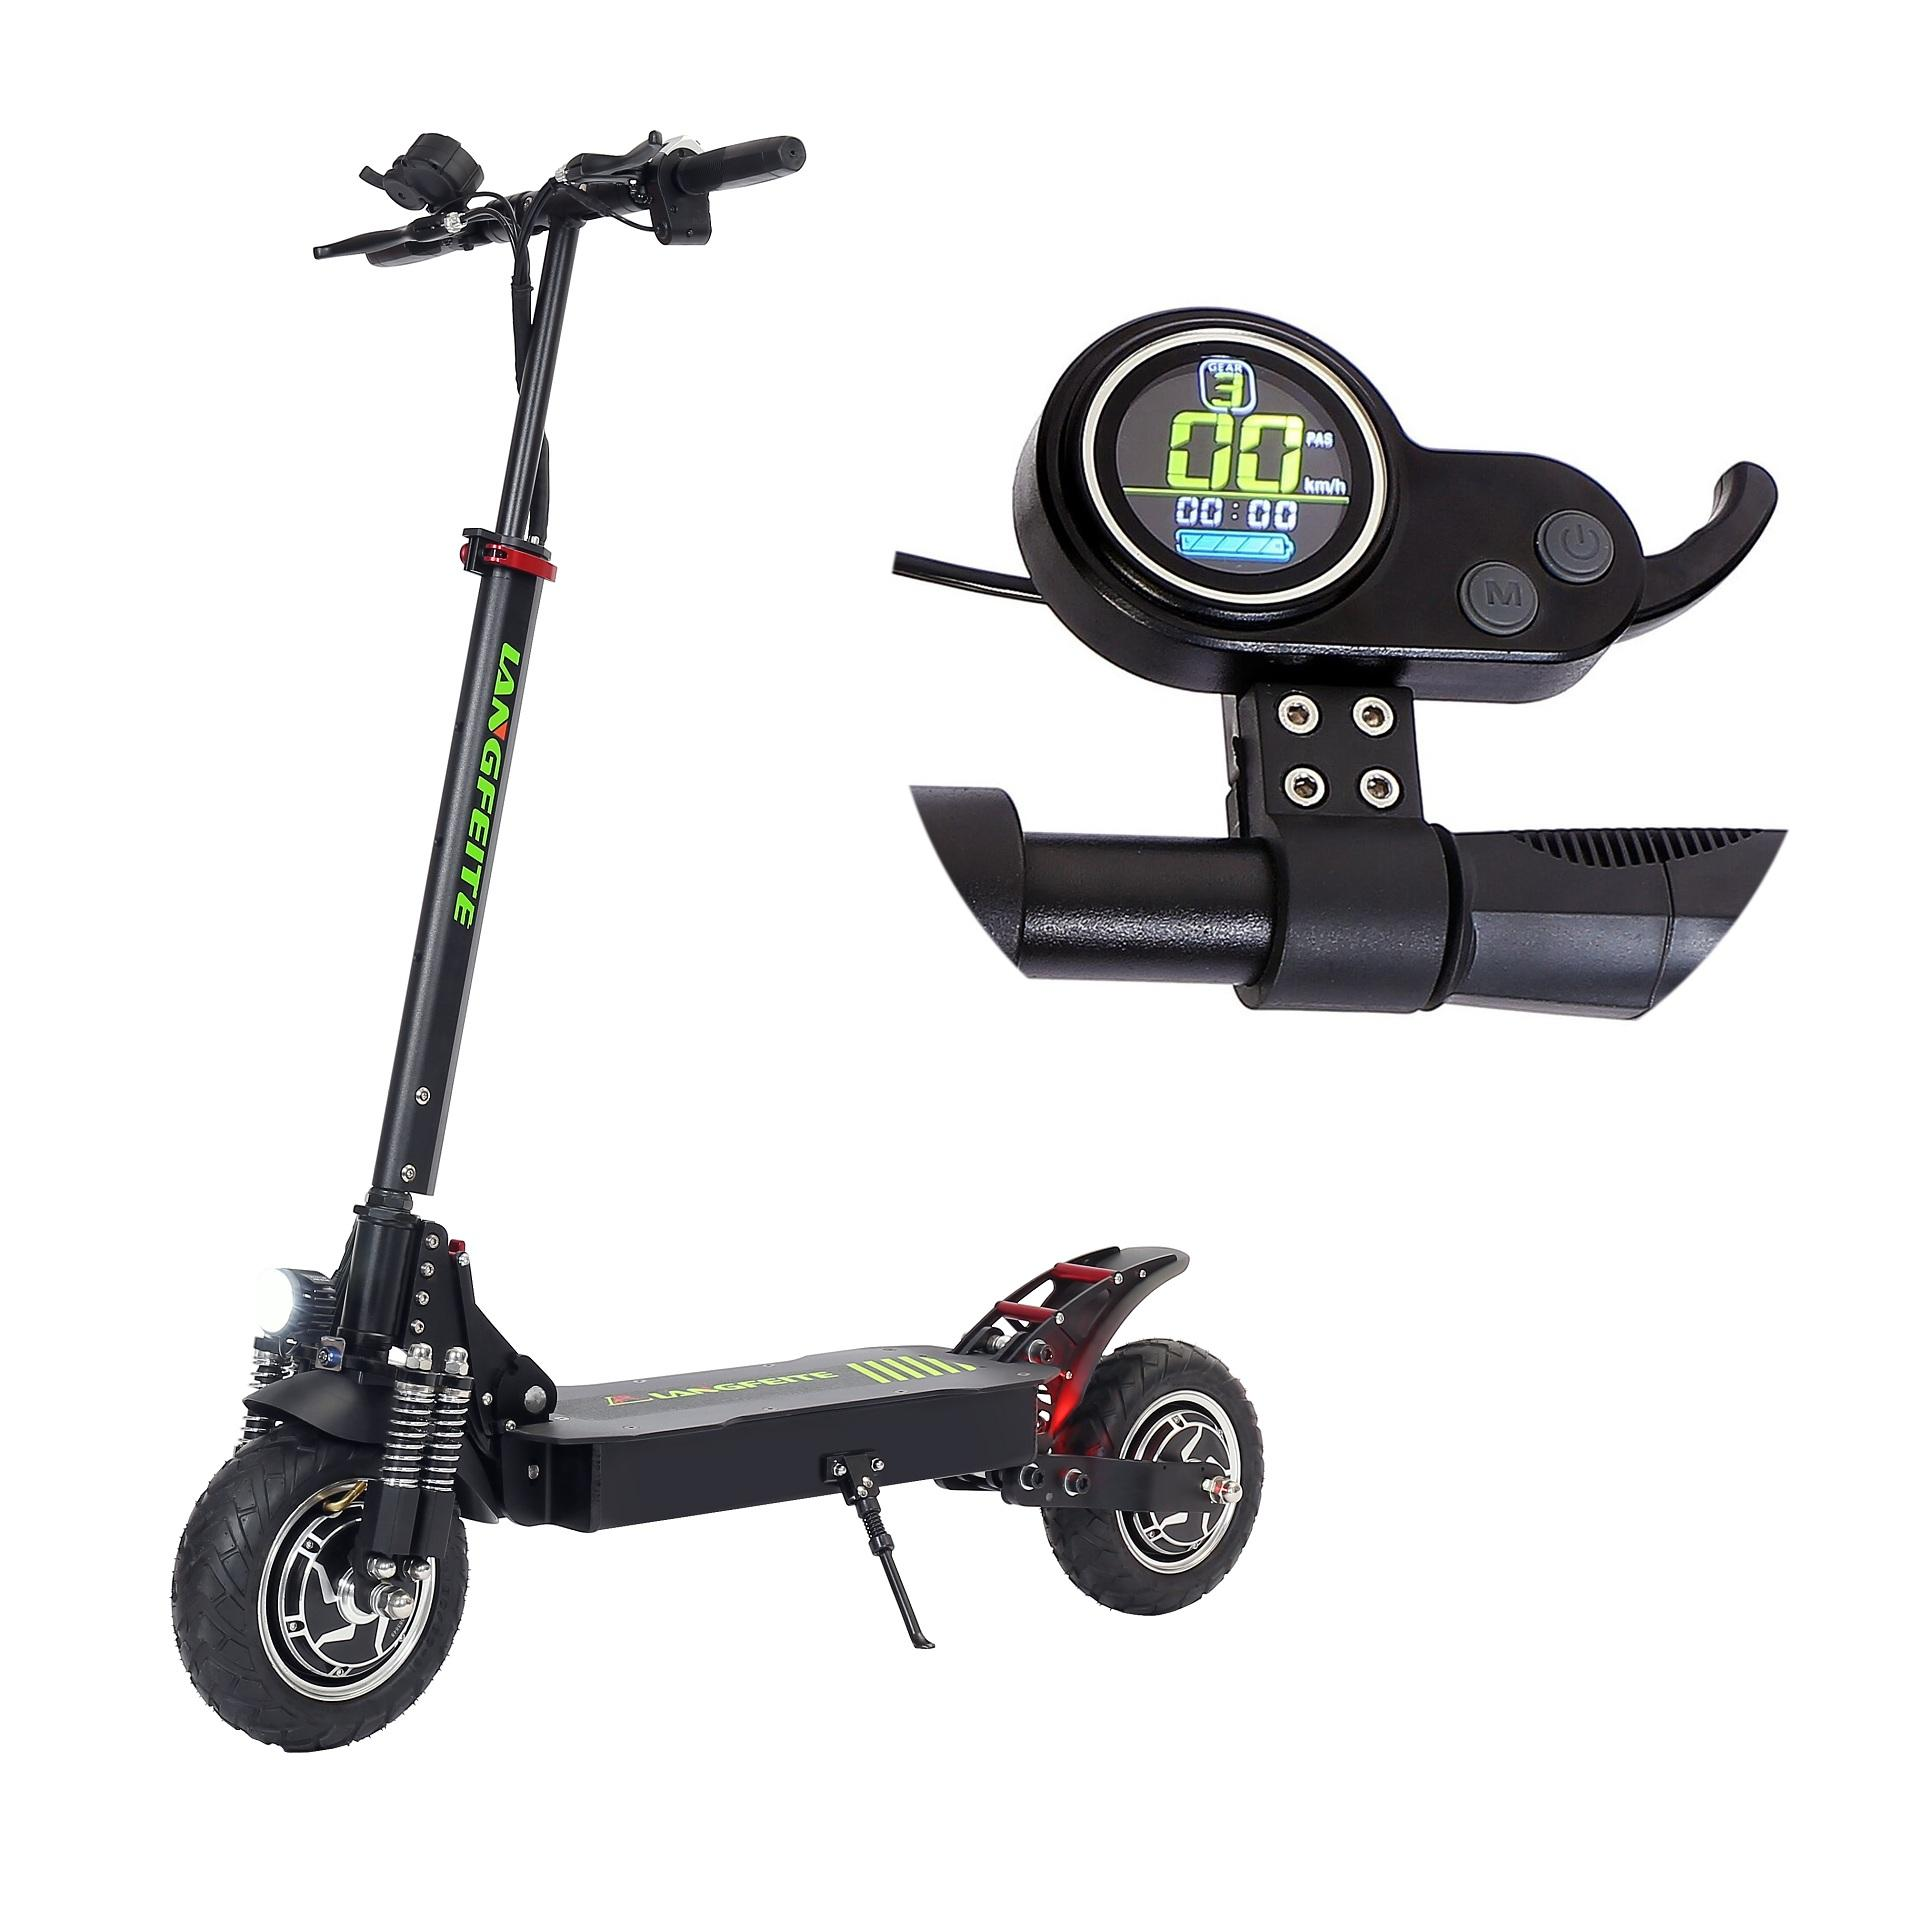 LANGFEITE L8S 2019 Version 20.8Ah 48.1V 800W*2 Dual Motor Folding Electric Scooter Color Display DC Brushless Motor 45km/h Top Speed 55km Range EU Plug - Black